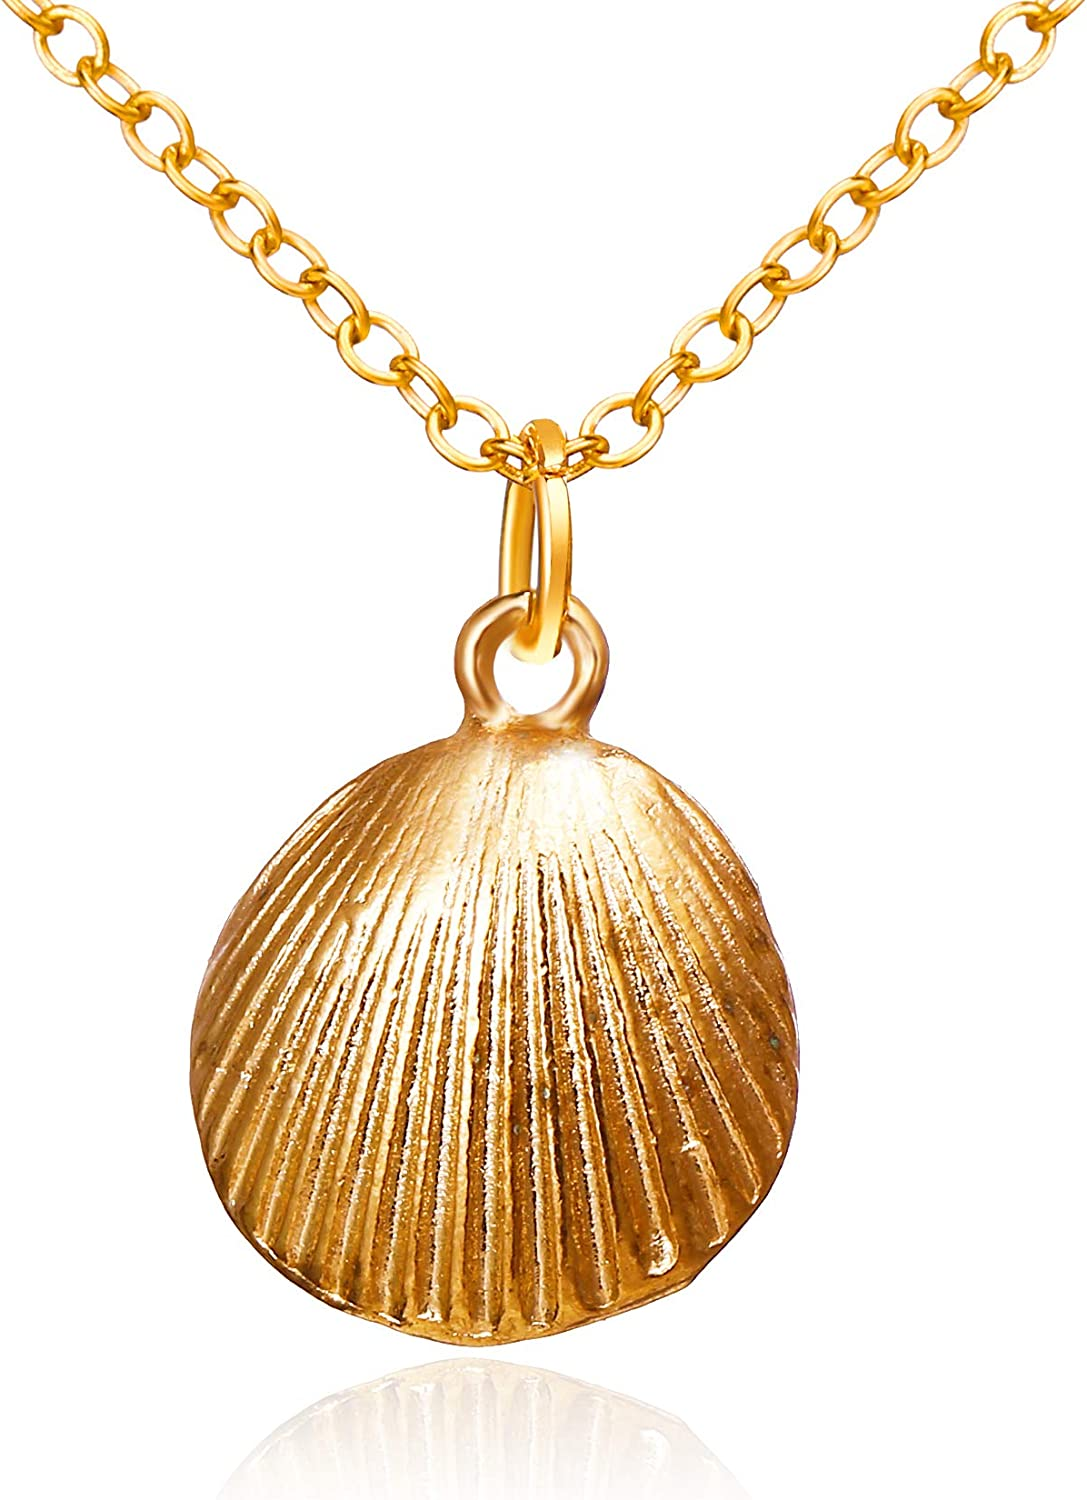 Shells Boho Necklace Chain with Pendant .Marine Theme Fangie 24k Gold Plated Necklace for Women